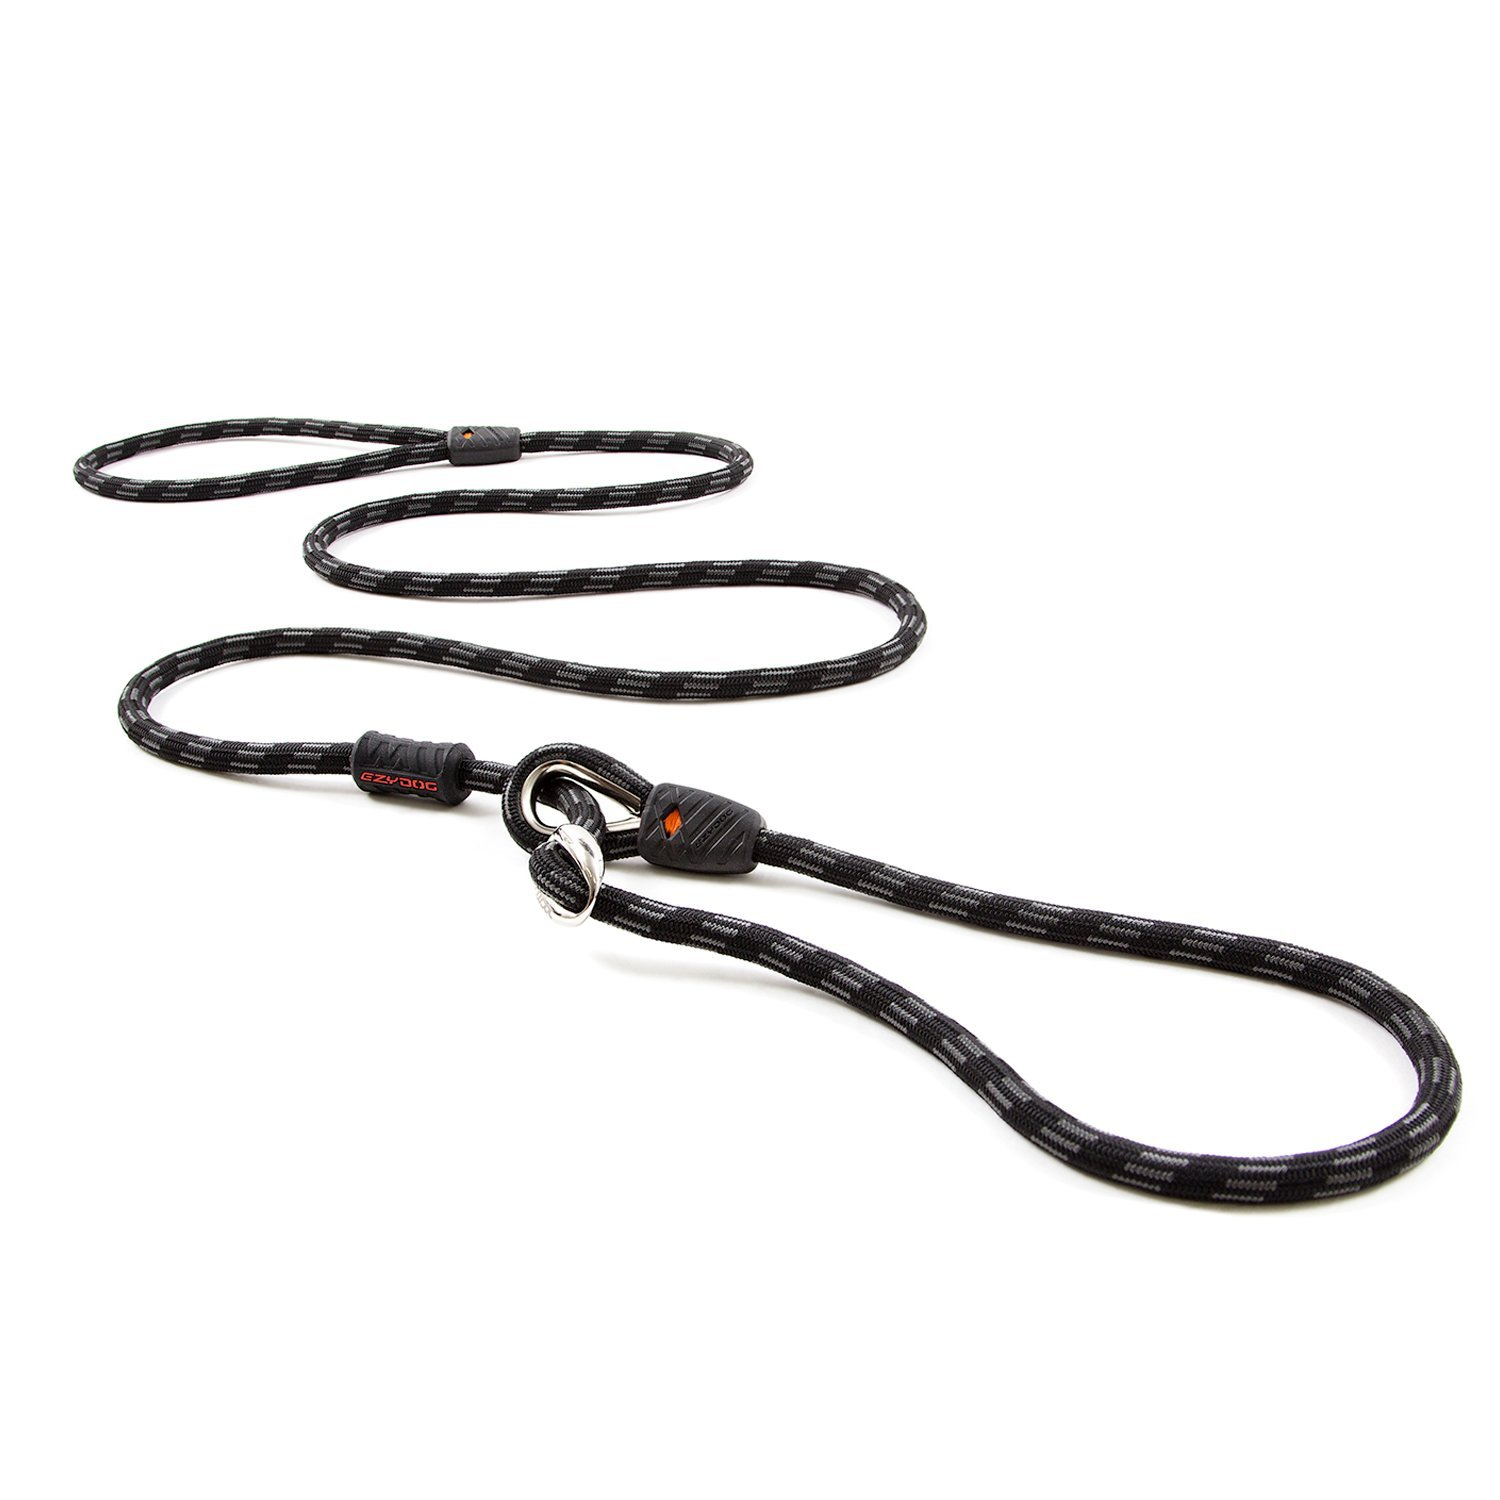 Black Standard Black Standard EzyDog Luca All-in-One Slip Collar Climbing Rope Dog Leash Combo Best Dog Lead for Control, Training, Correction, and Exercising Perfect for Medium and Large Dogs (Standard, Black)